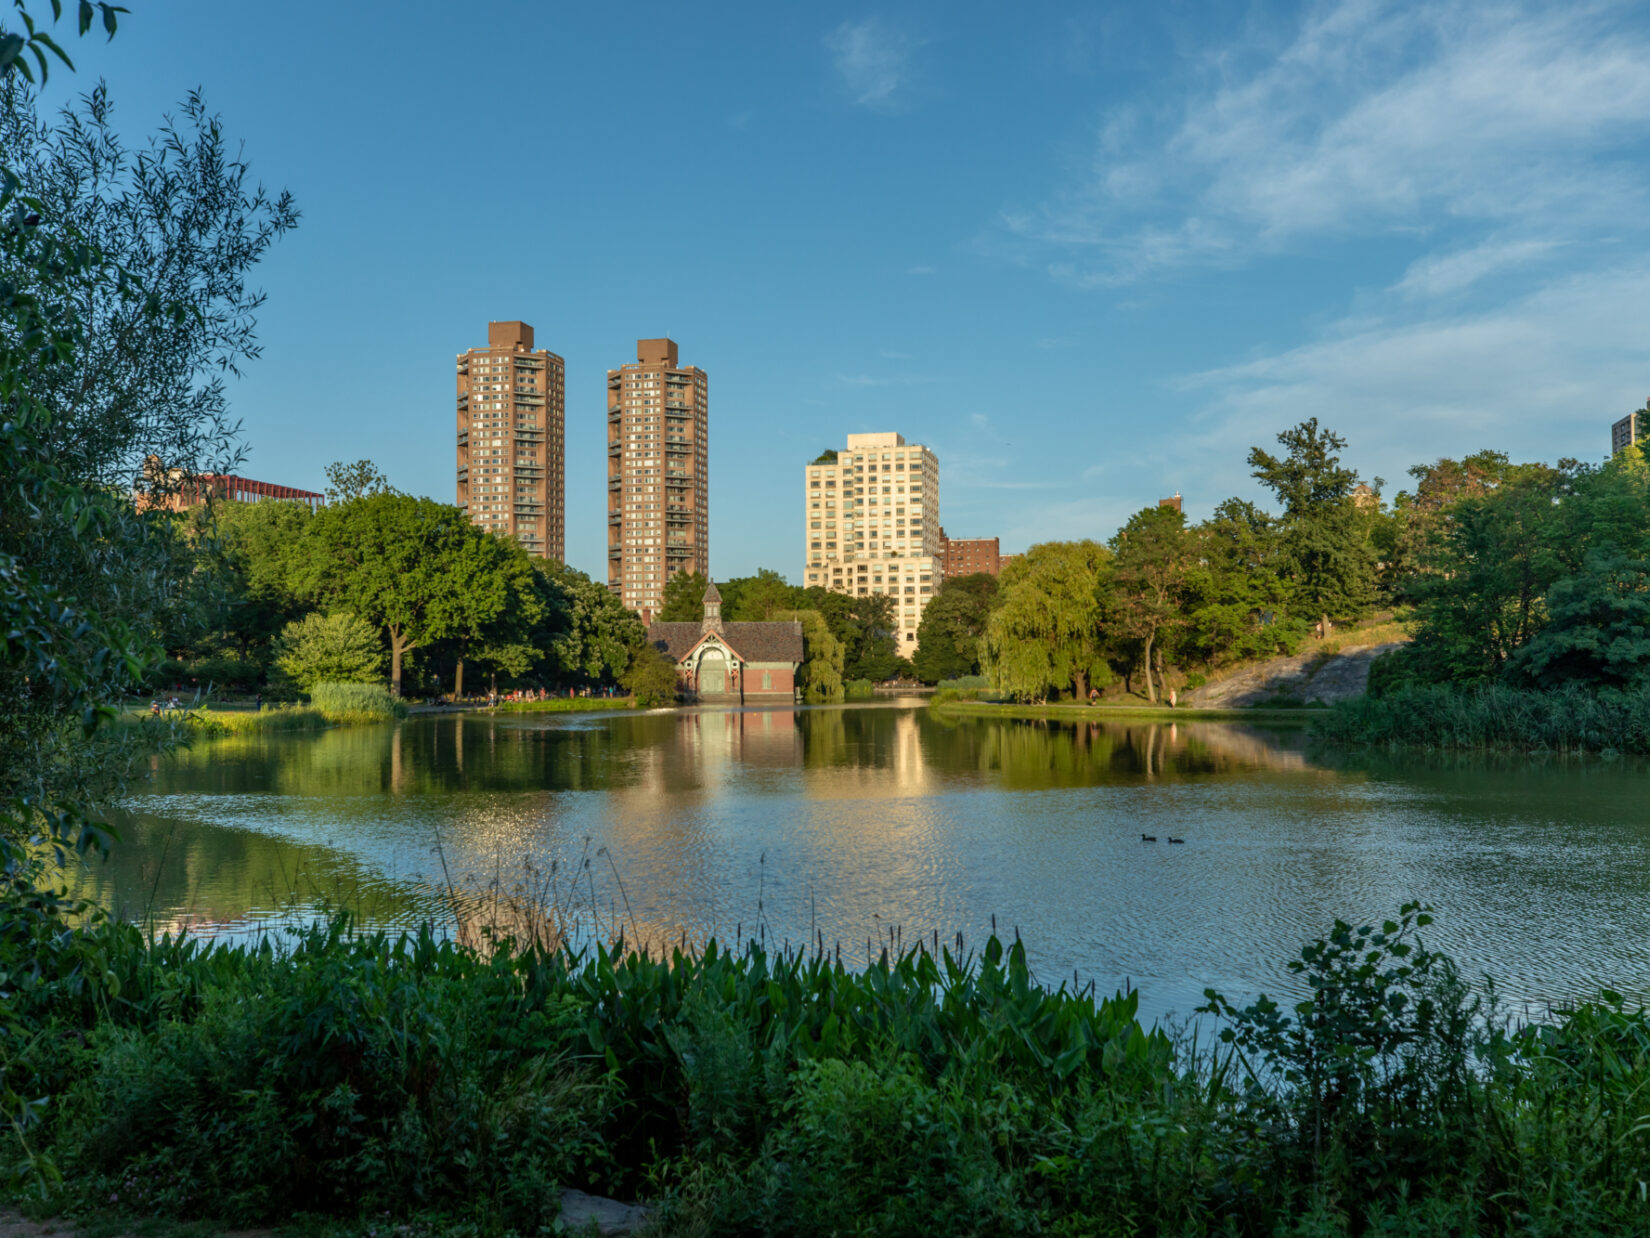 The Harlem Meer on a sunny day